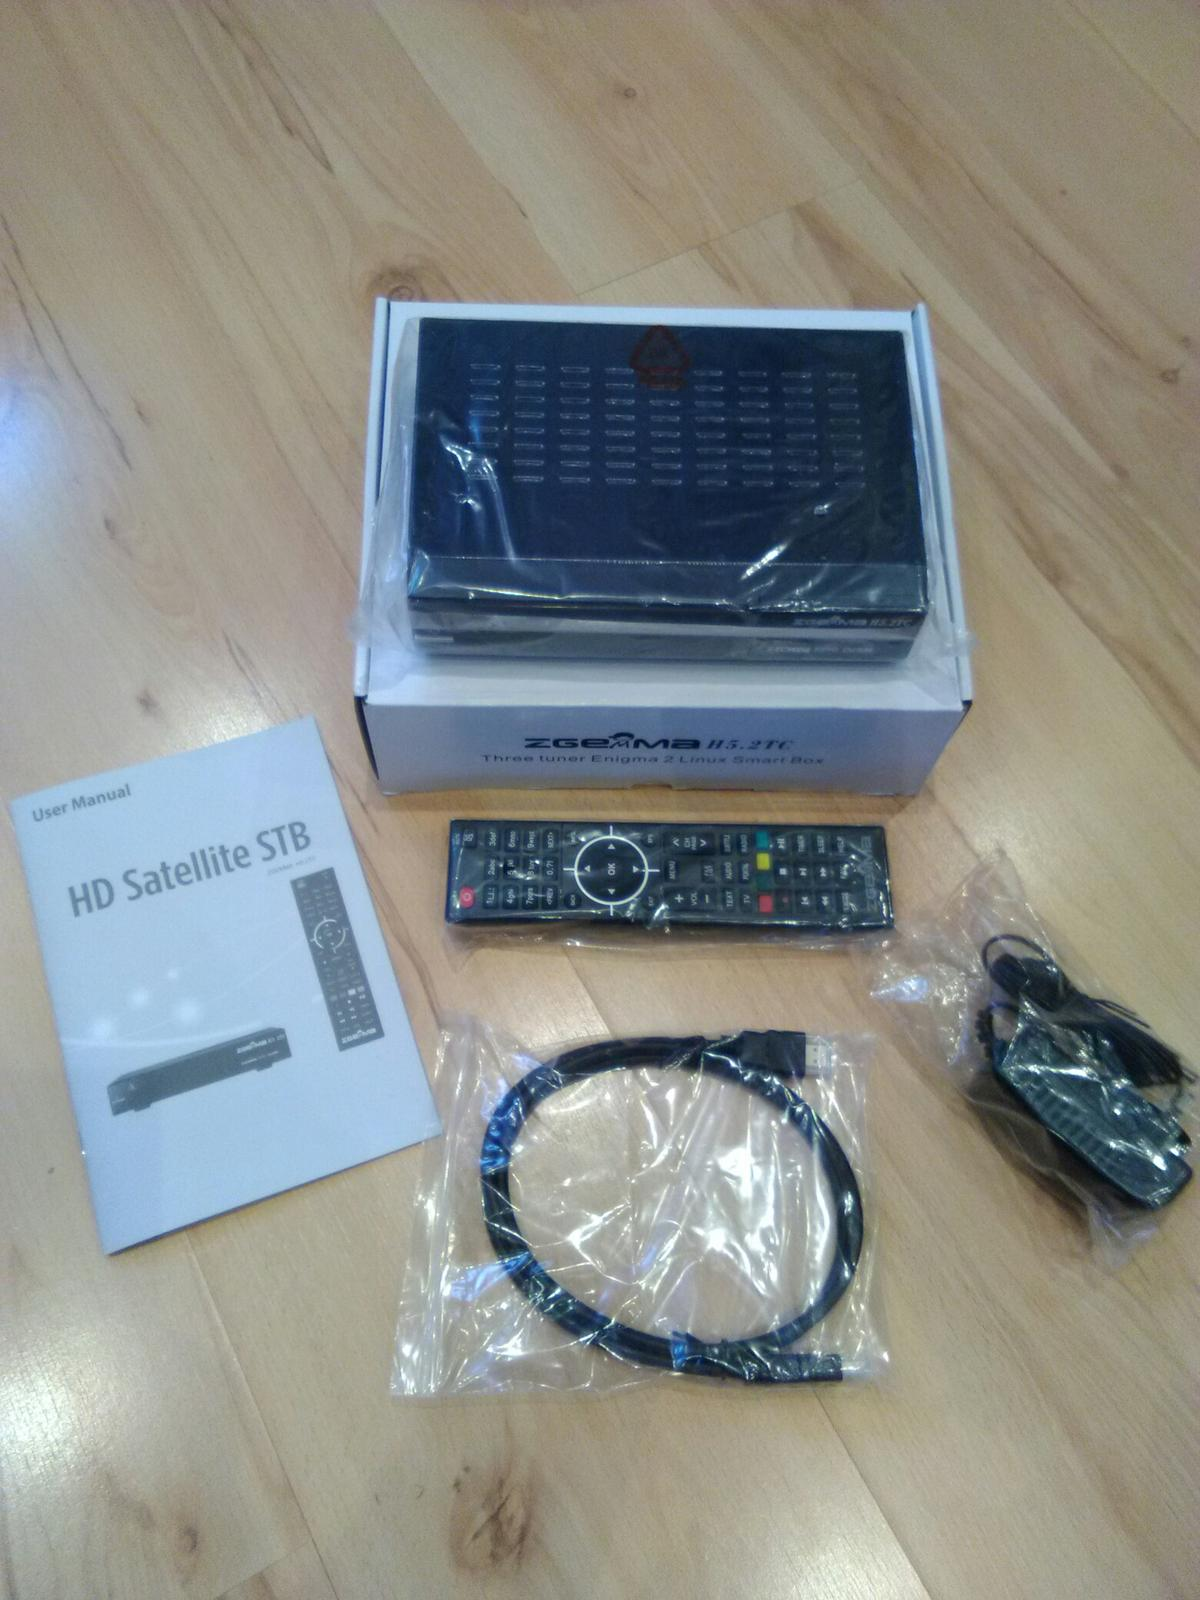 ZGEMMA H5 2TC DIGITAL SATELLITE RECEIVER in ST6 Tunstall for